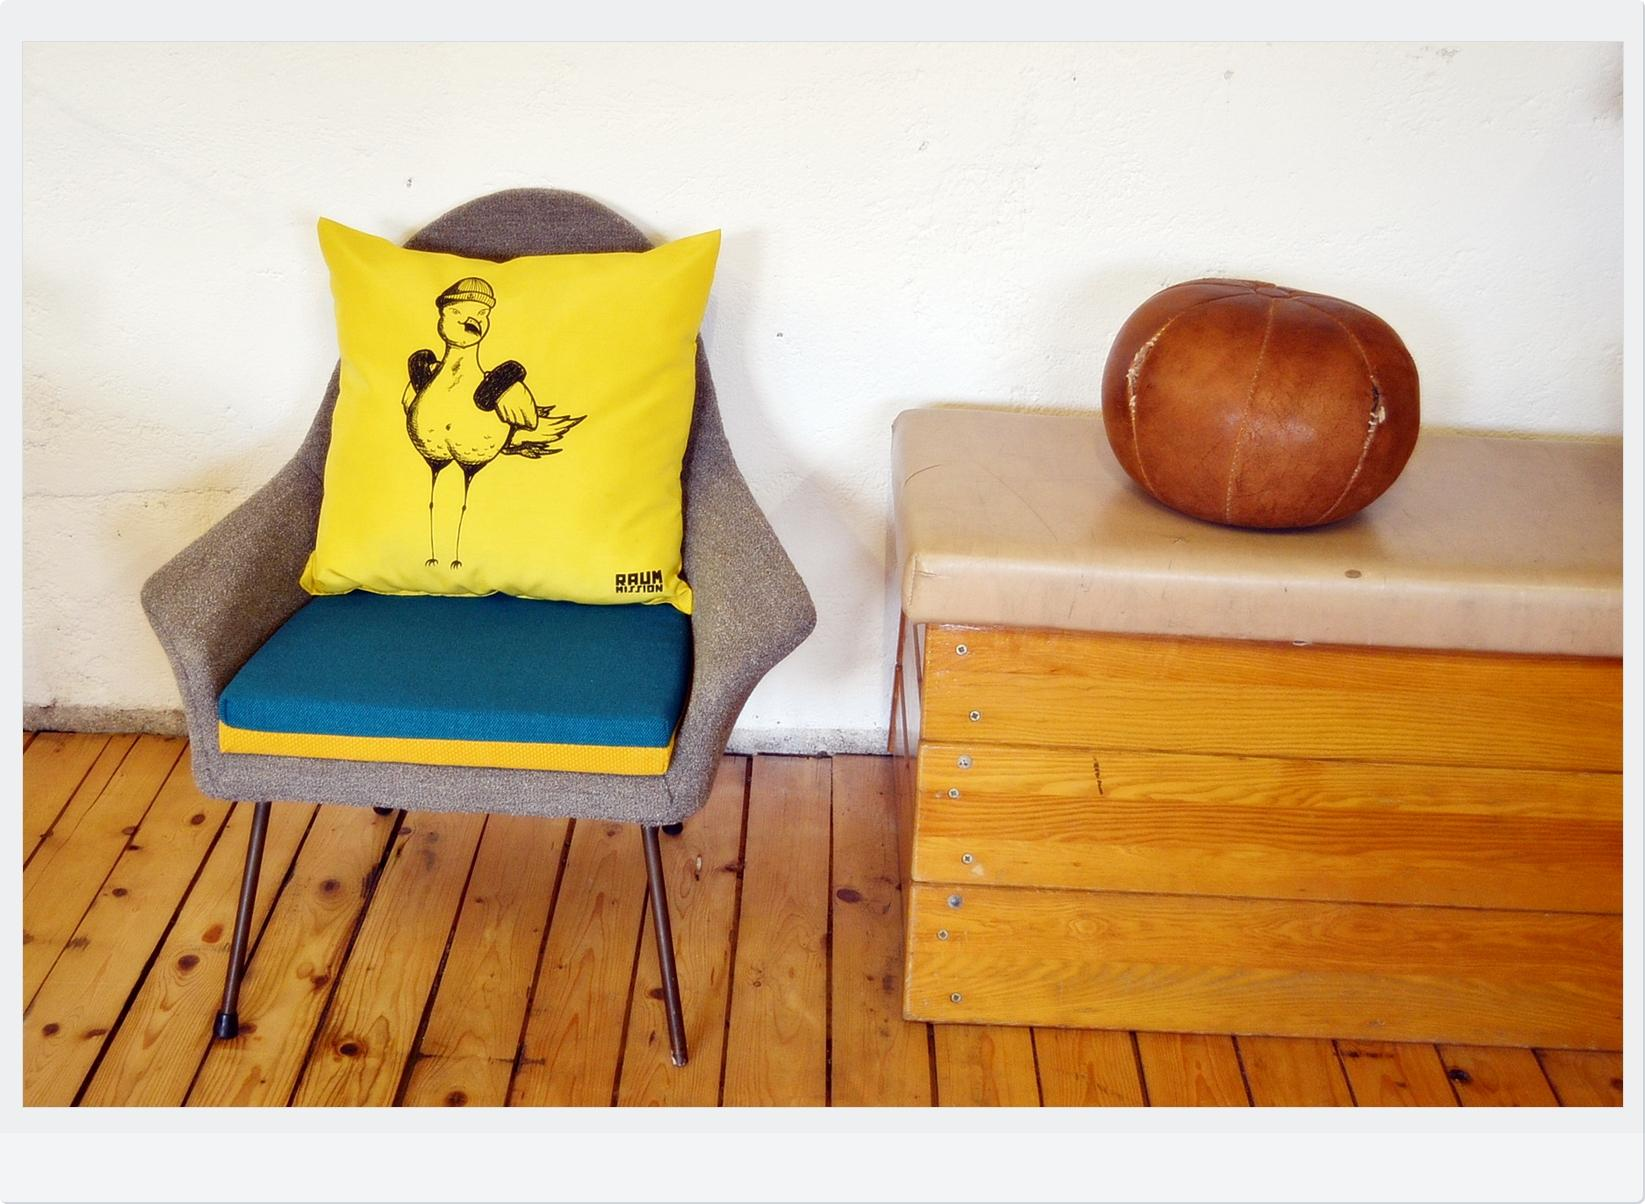 Vintage Sessel Upcycling #sessel #kissen #grauersessel #upcycling ©Raummission